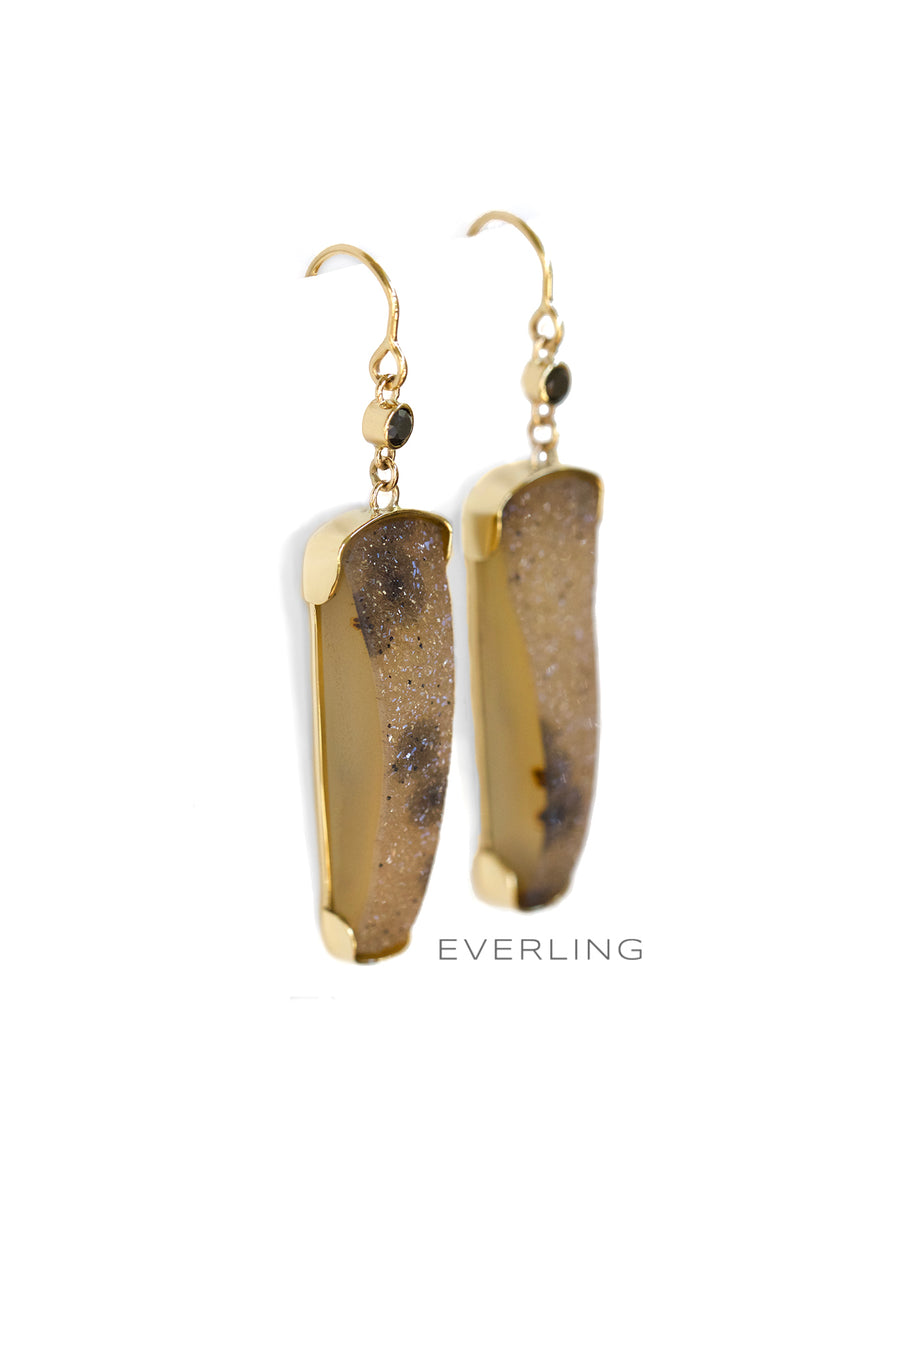 Detail-Recycled 18k yellow gold dangle earrings with druzy quartz and black diamonds. www.EverlingJewelry.com